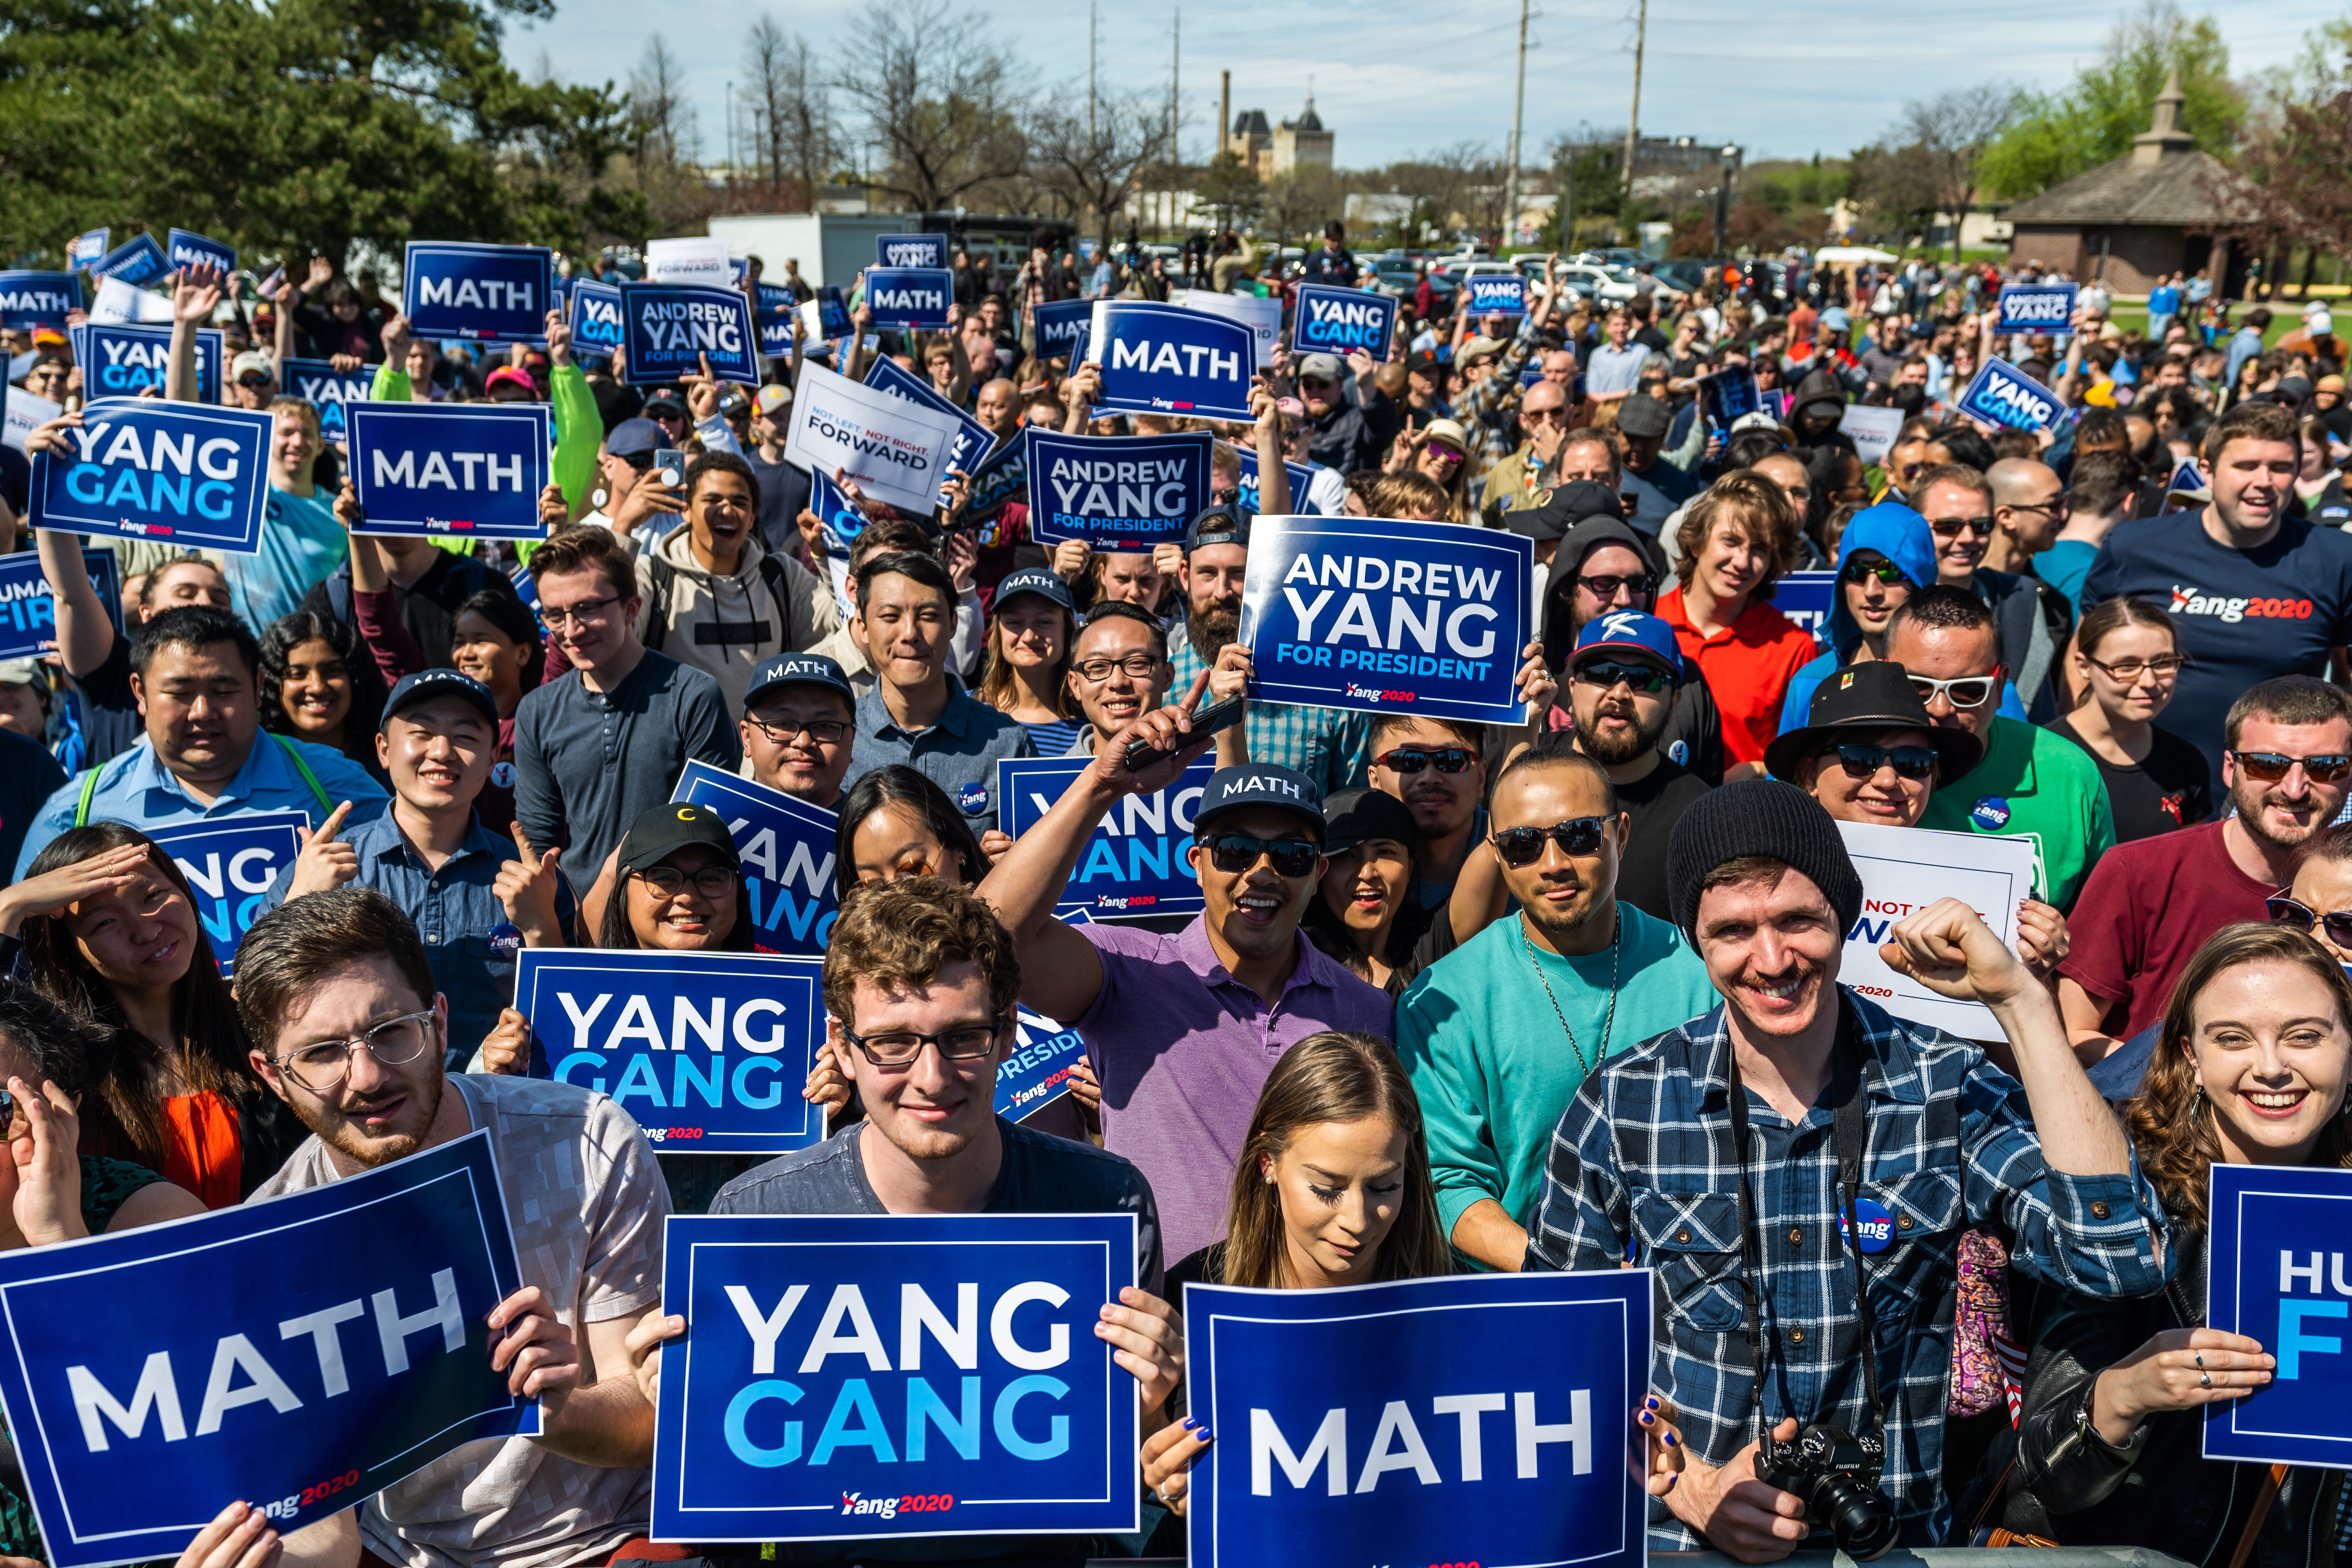 Andrew Yang's crowd of supporters in Minneapolis